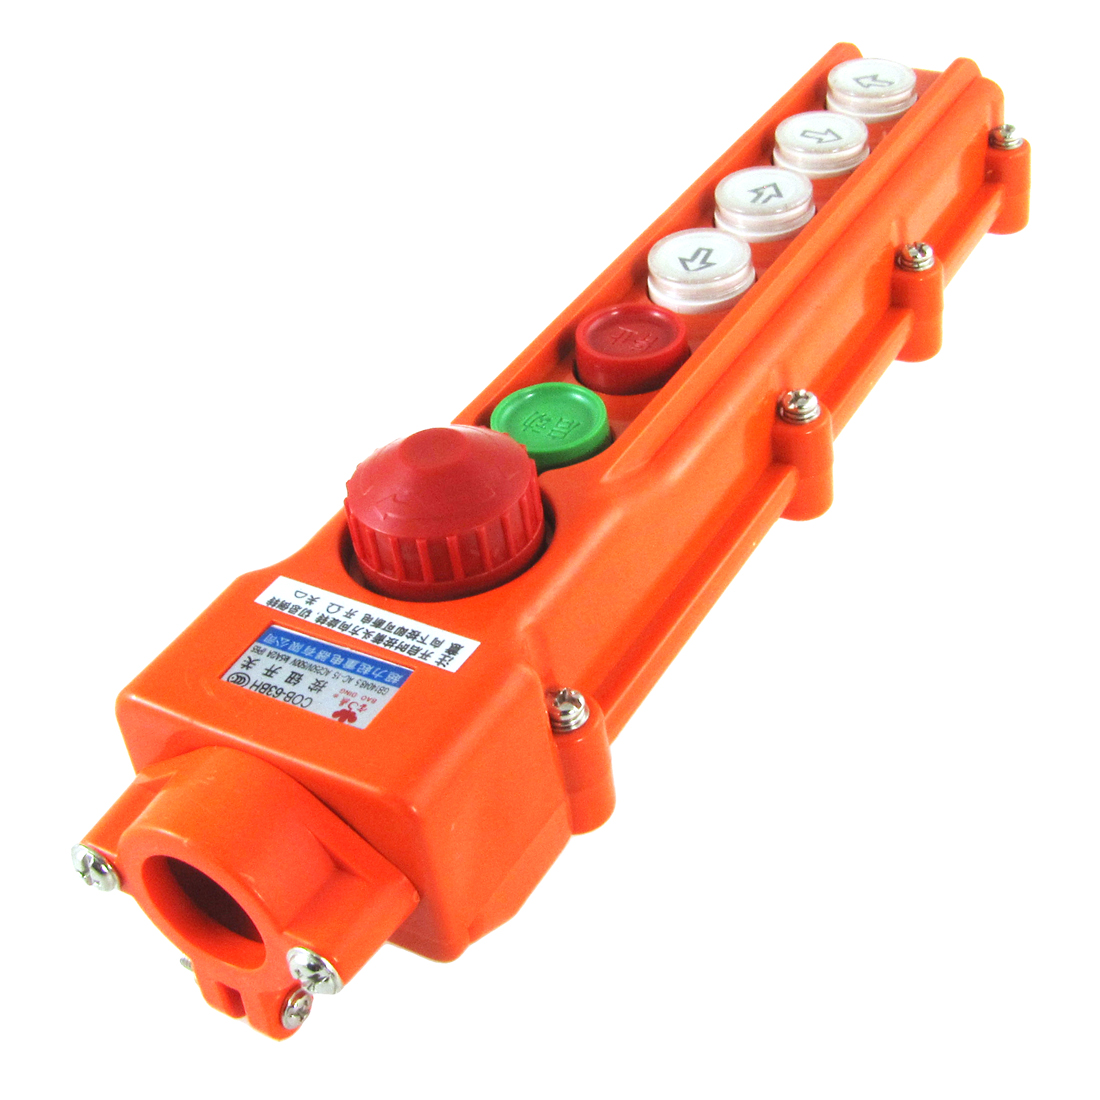 Rainproof Hoist Crane Control Station 4 Way Pushbutton Switch w Emergency Stop